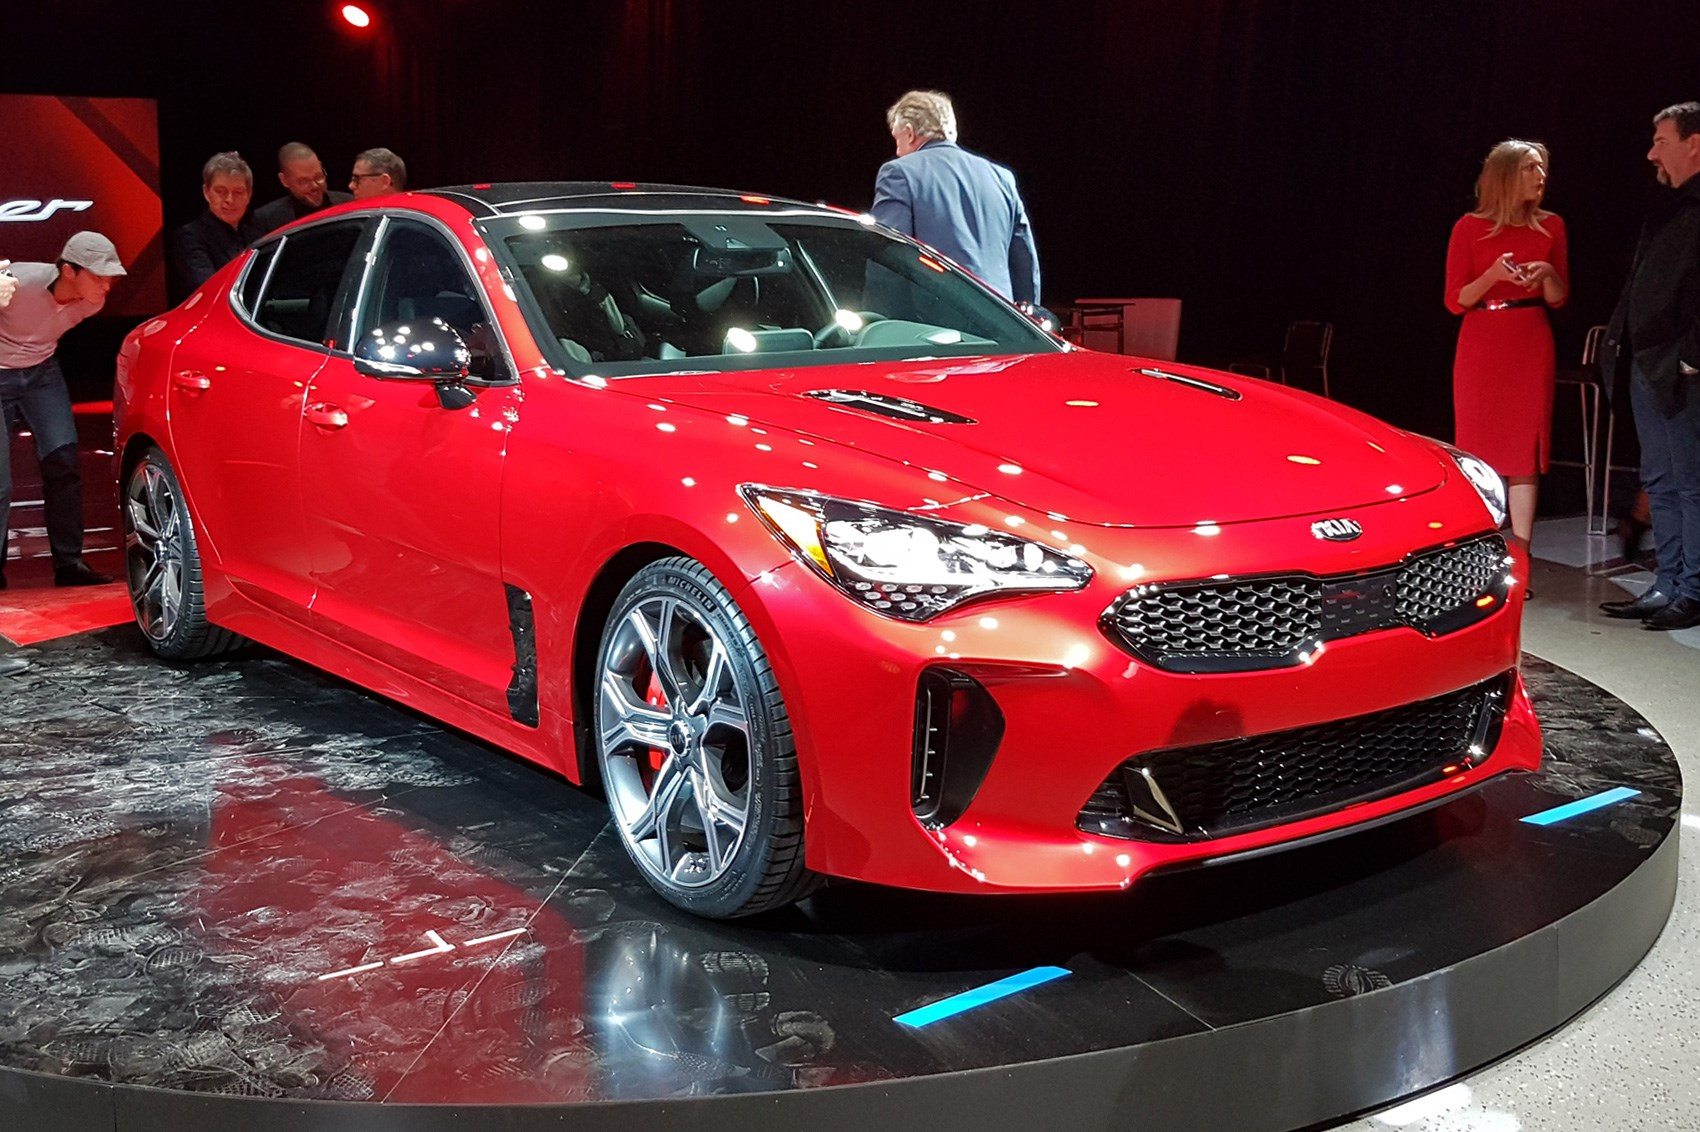 kia sport sponsorship in the uk Auto fill delivery address: should your application be successful, please provide a delivery address for the product sponsorship.